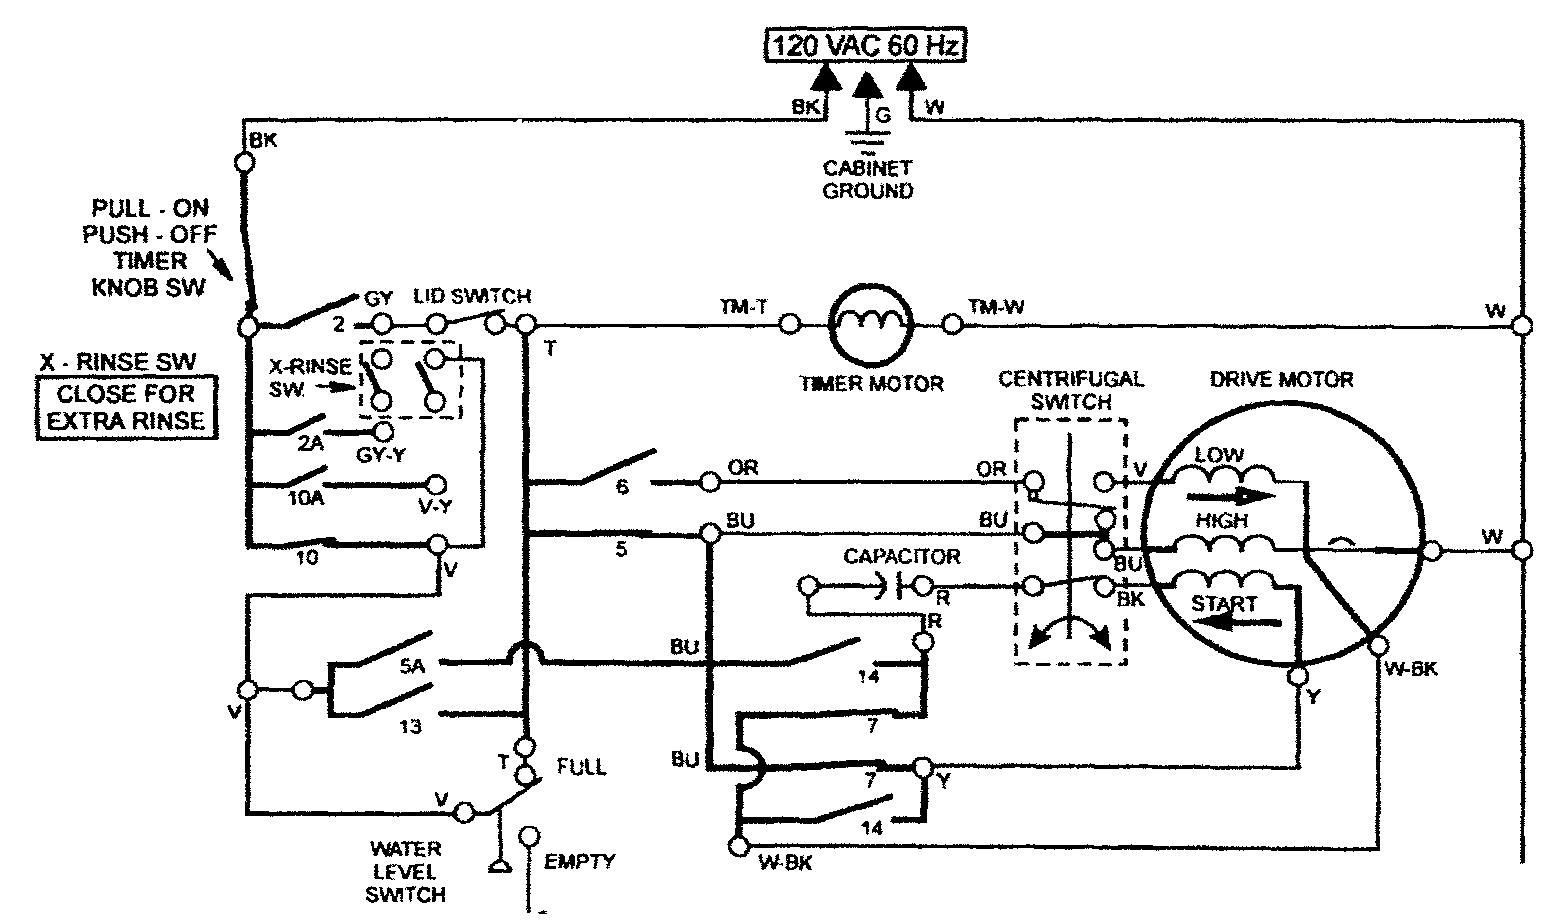 whirlpool electric dryer wiring diagram with Mat Course Module Five S Le Page on 4234703030 further Bosch Dishwasher Parts Schematic Bosch Refrigerator Parts List Bosch Dishwasher Wiring Diagram In P0308153 00008  Bosch Exxcel Dishwasher Parts Diagram furthermore Amana Refrigerator Problems Not Cooling also Index together with Whirlpool Gas Range Wiring Diagram.